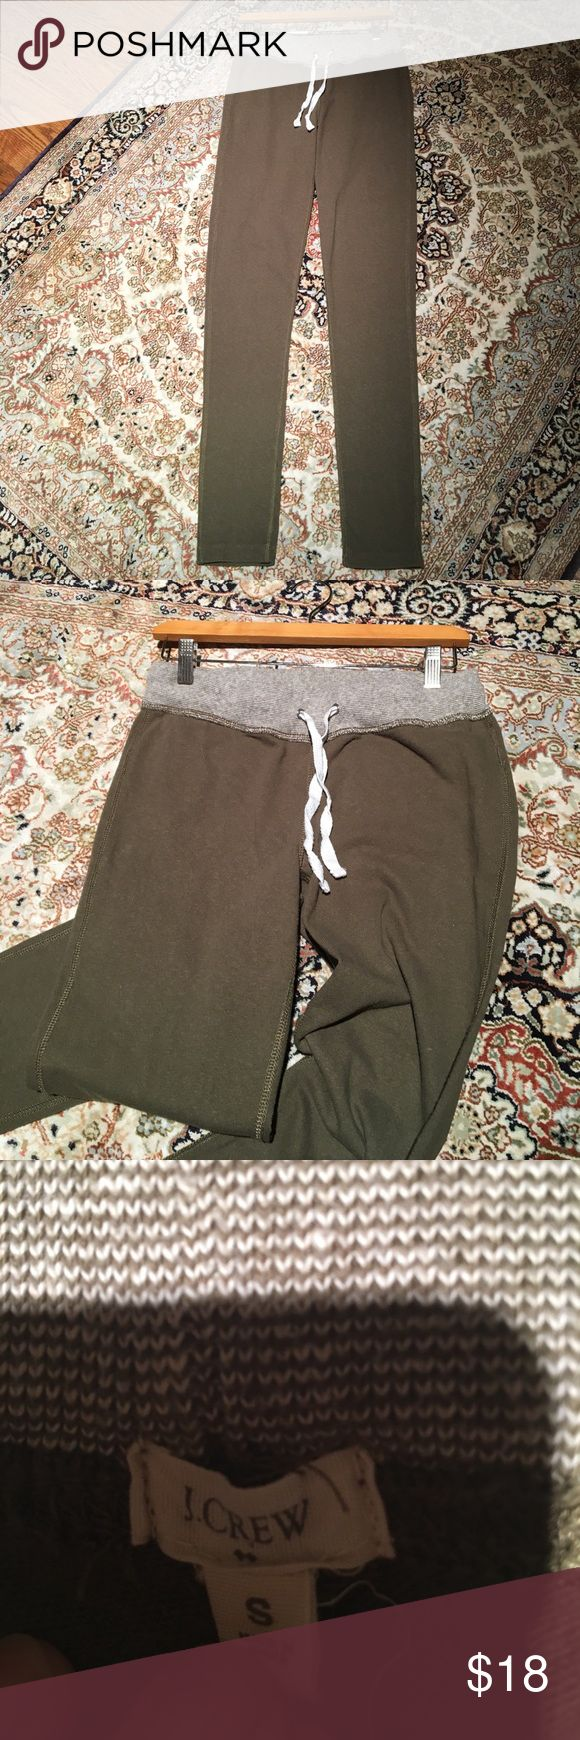 J. Crew Pants Olive green J. Crew ankle sweat pants. Sz. S. EUC.  So soft you could sleep in these.  Stretch waist with tie front. Two back pockets. J. Crew Pants Ankle & Cropped